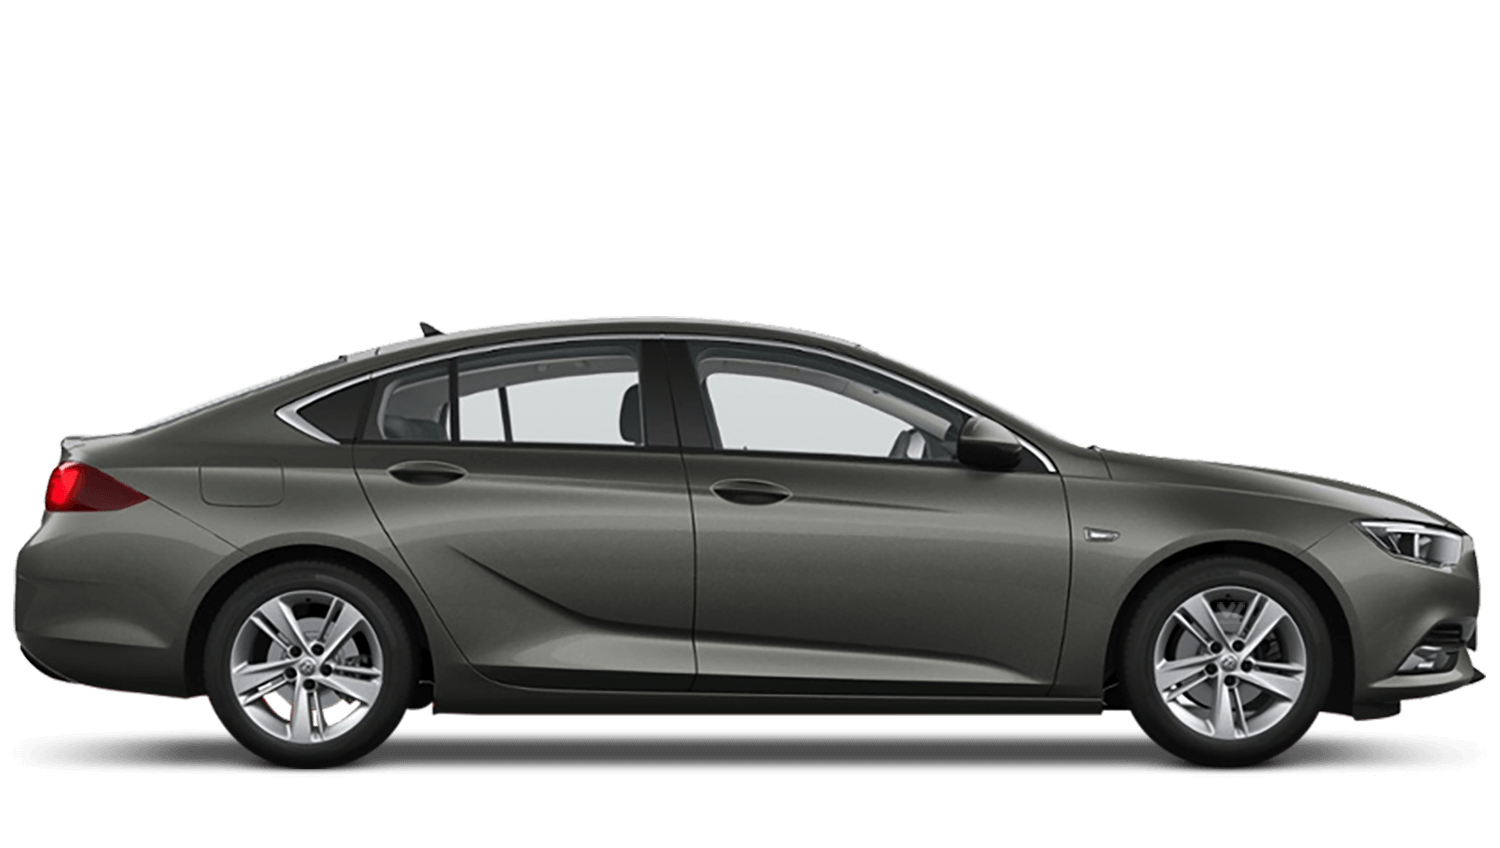 Cosmic Grey (Pearlescent) Vauxhall Insignia Grand Sport